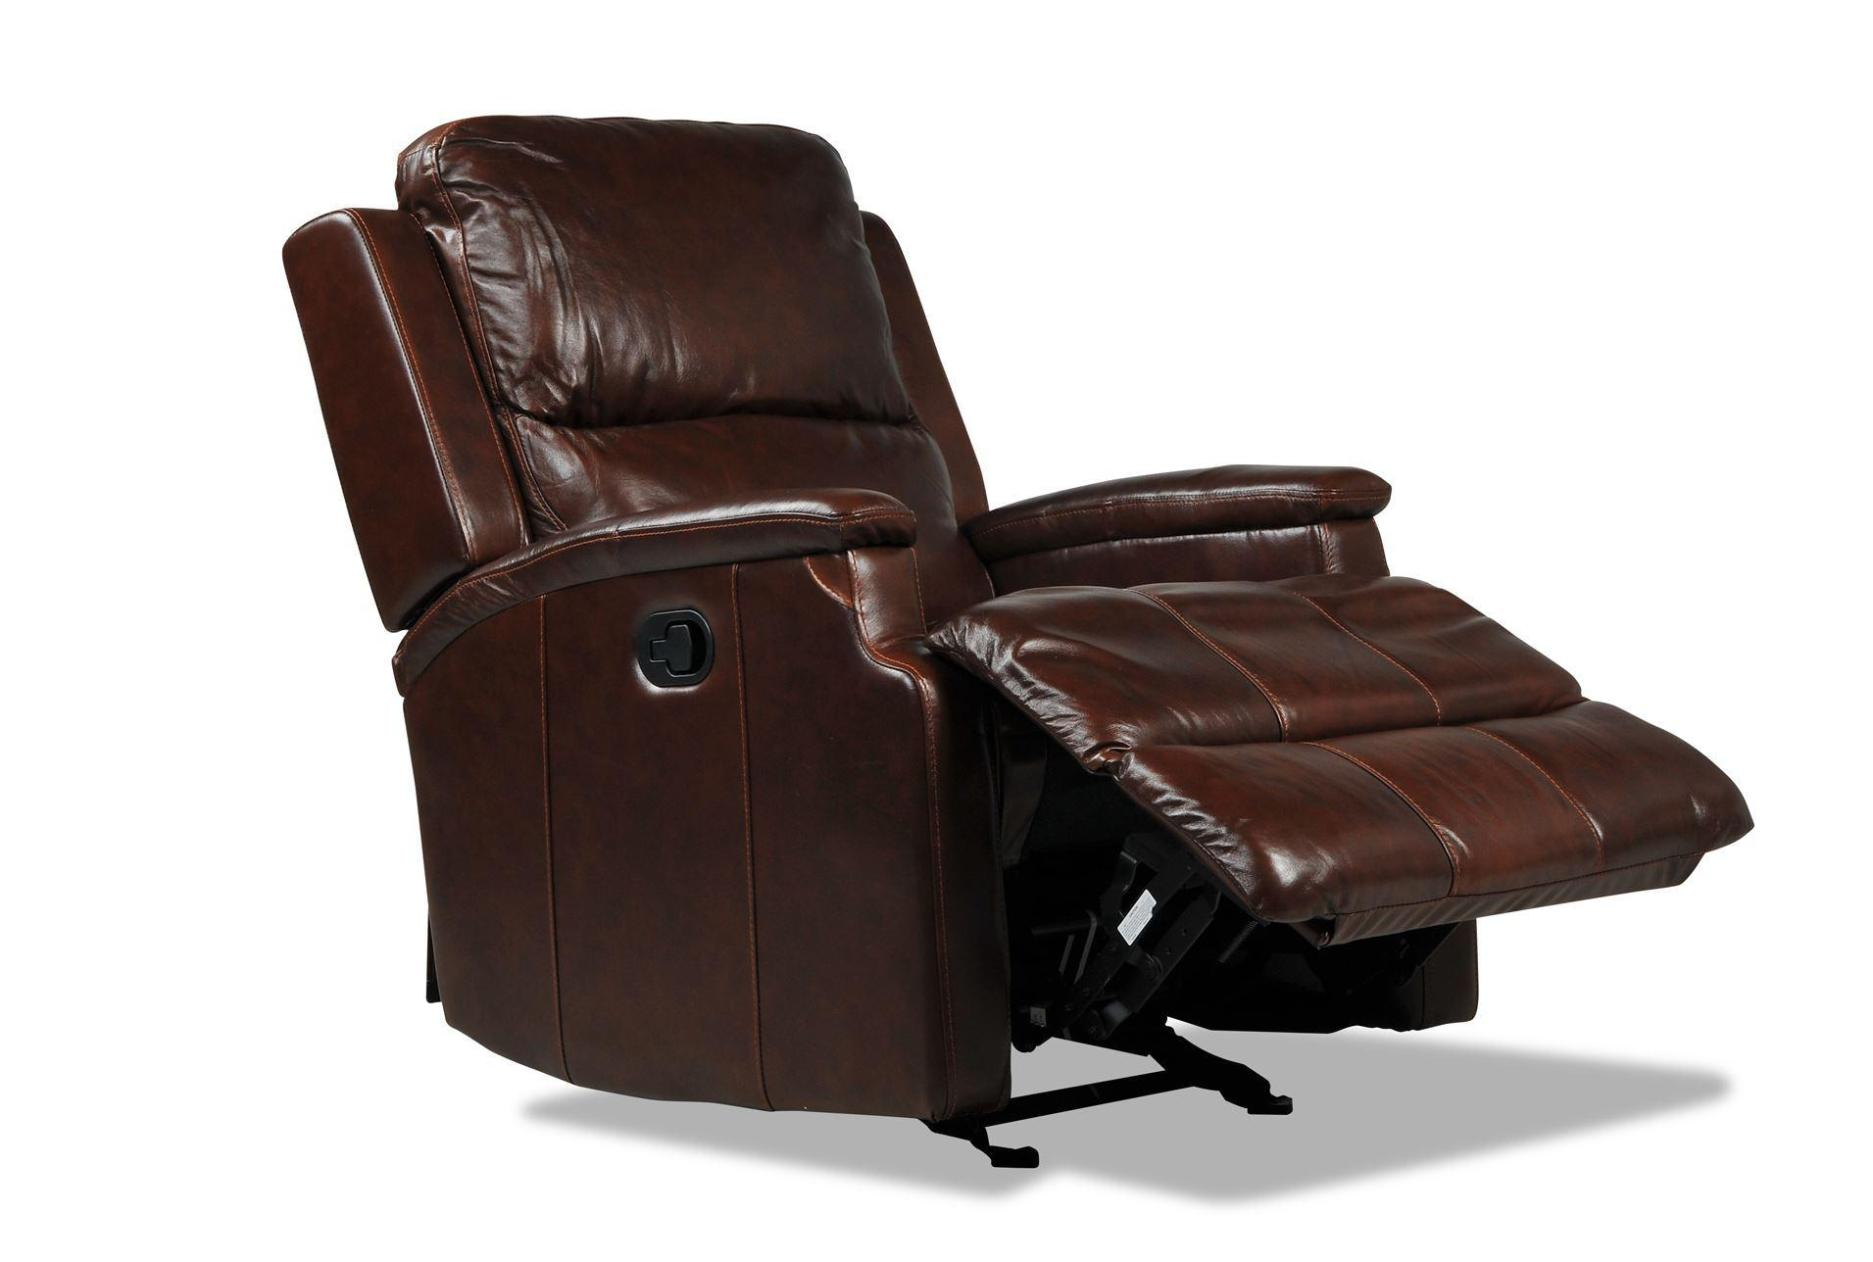 Image of: Reclining Glider Rocker And Ottoman